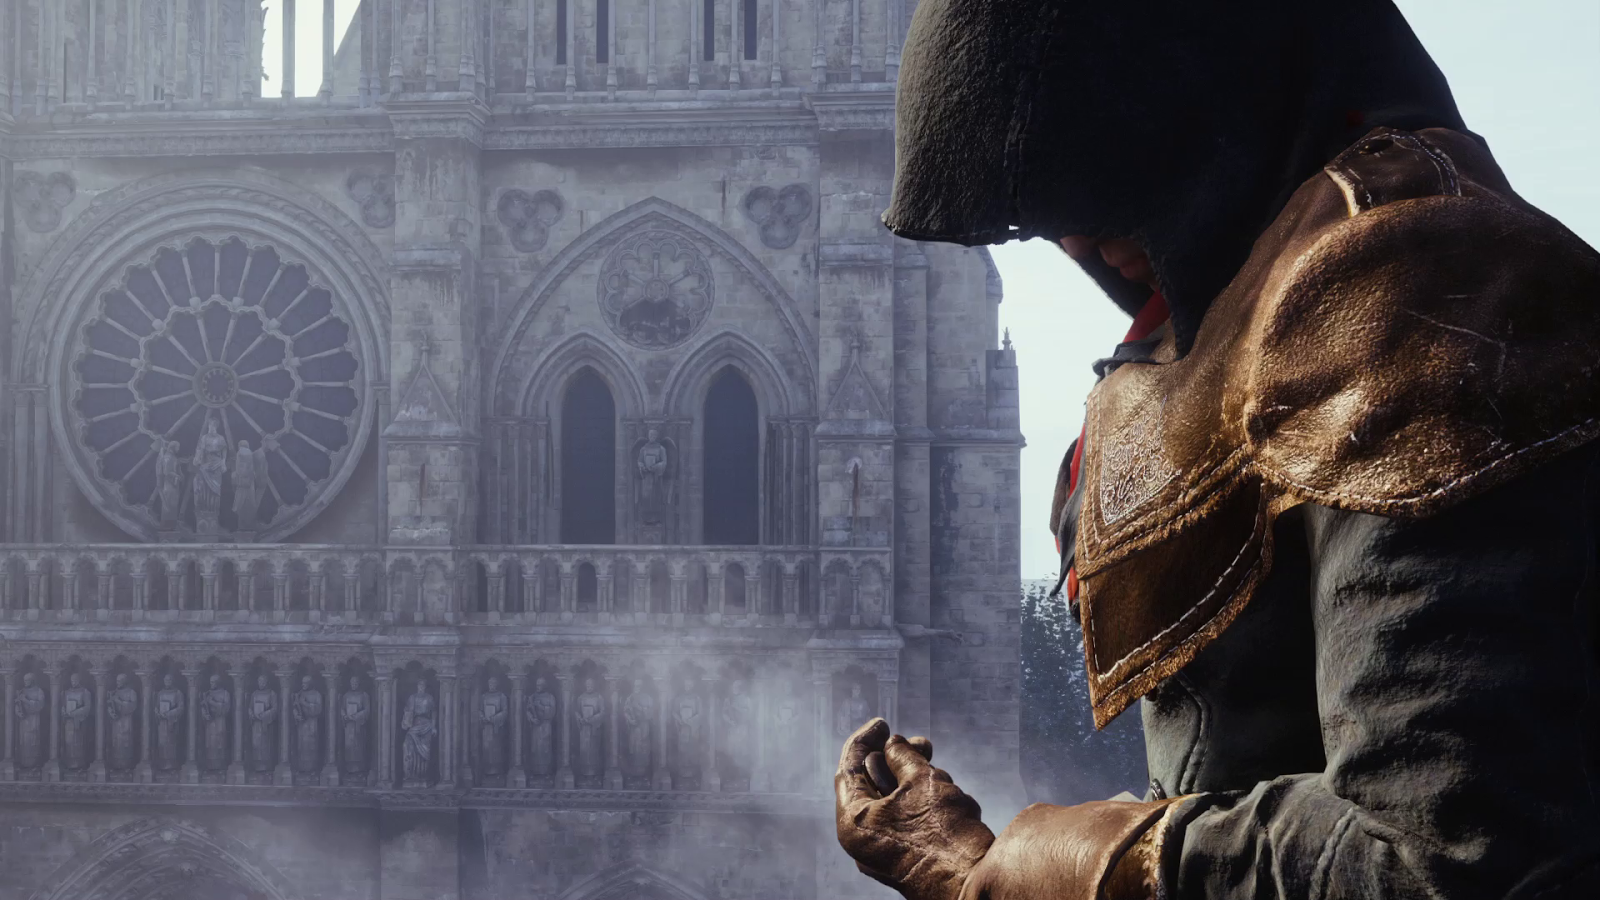 assassins creed unity hd wallpapers 1920x1080 walls720